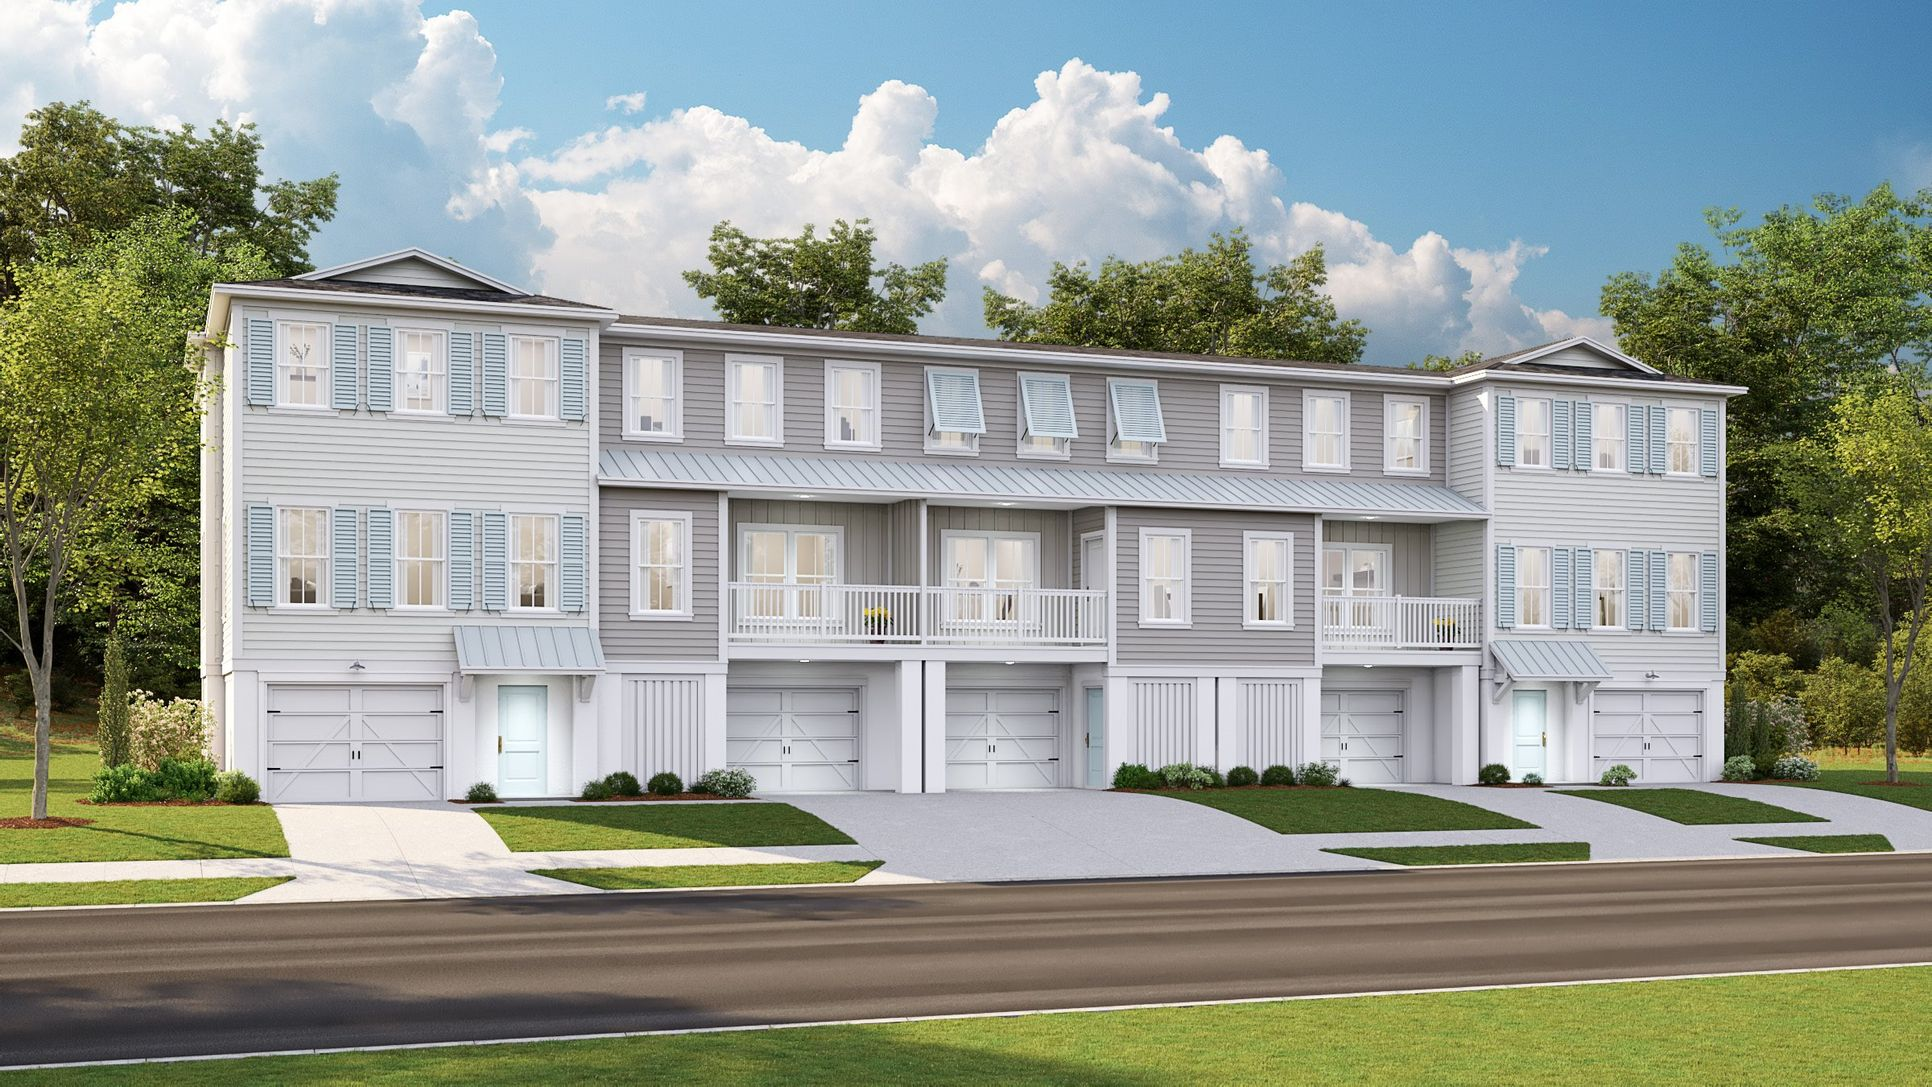 Governor's Cay Townhomes 5 Unit